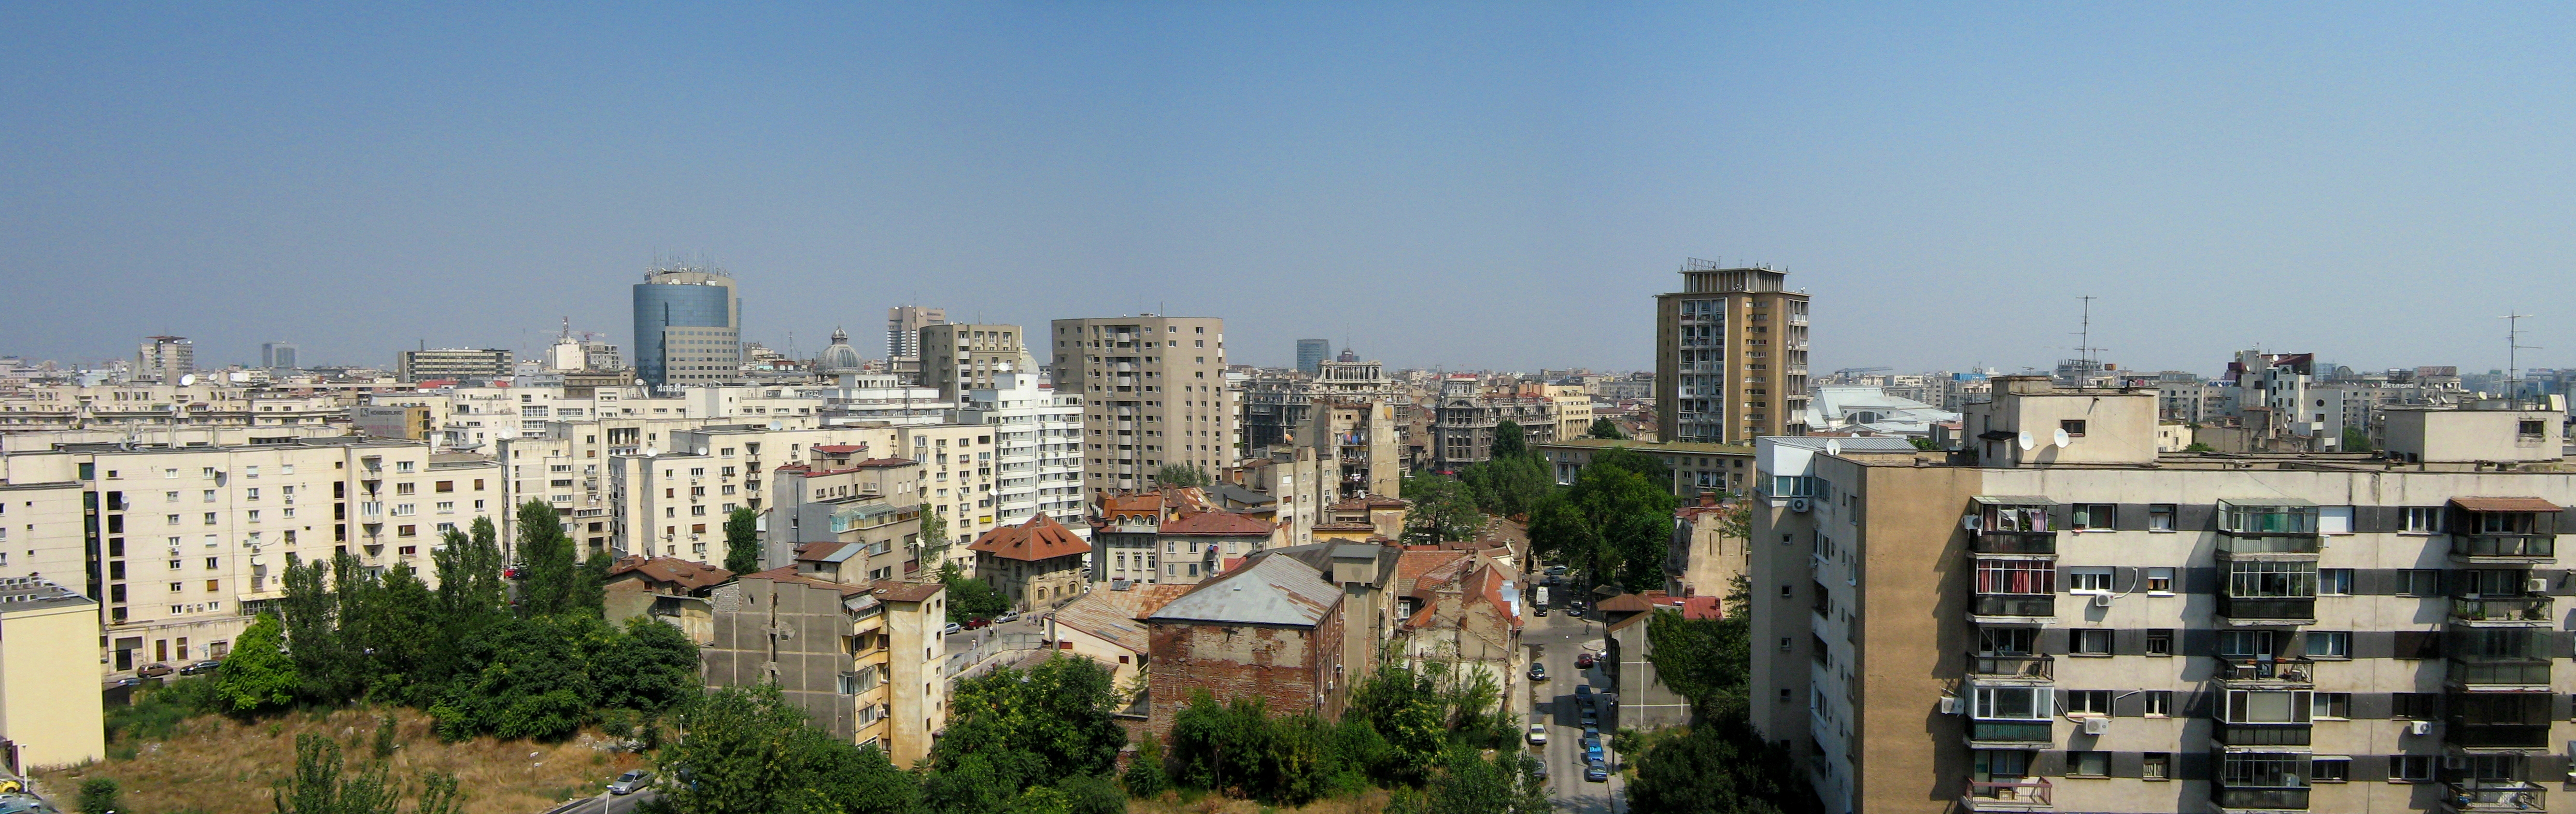 Bucharest Romania  City pictures : Description Bucharest, Romania panorama a